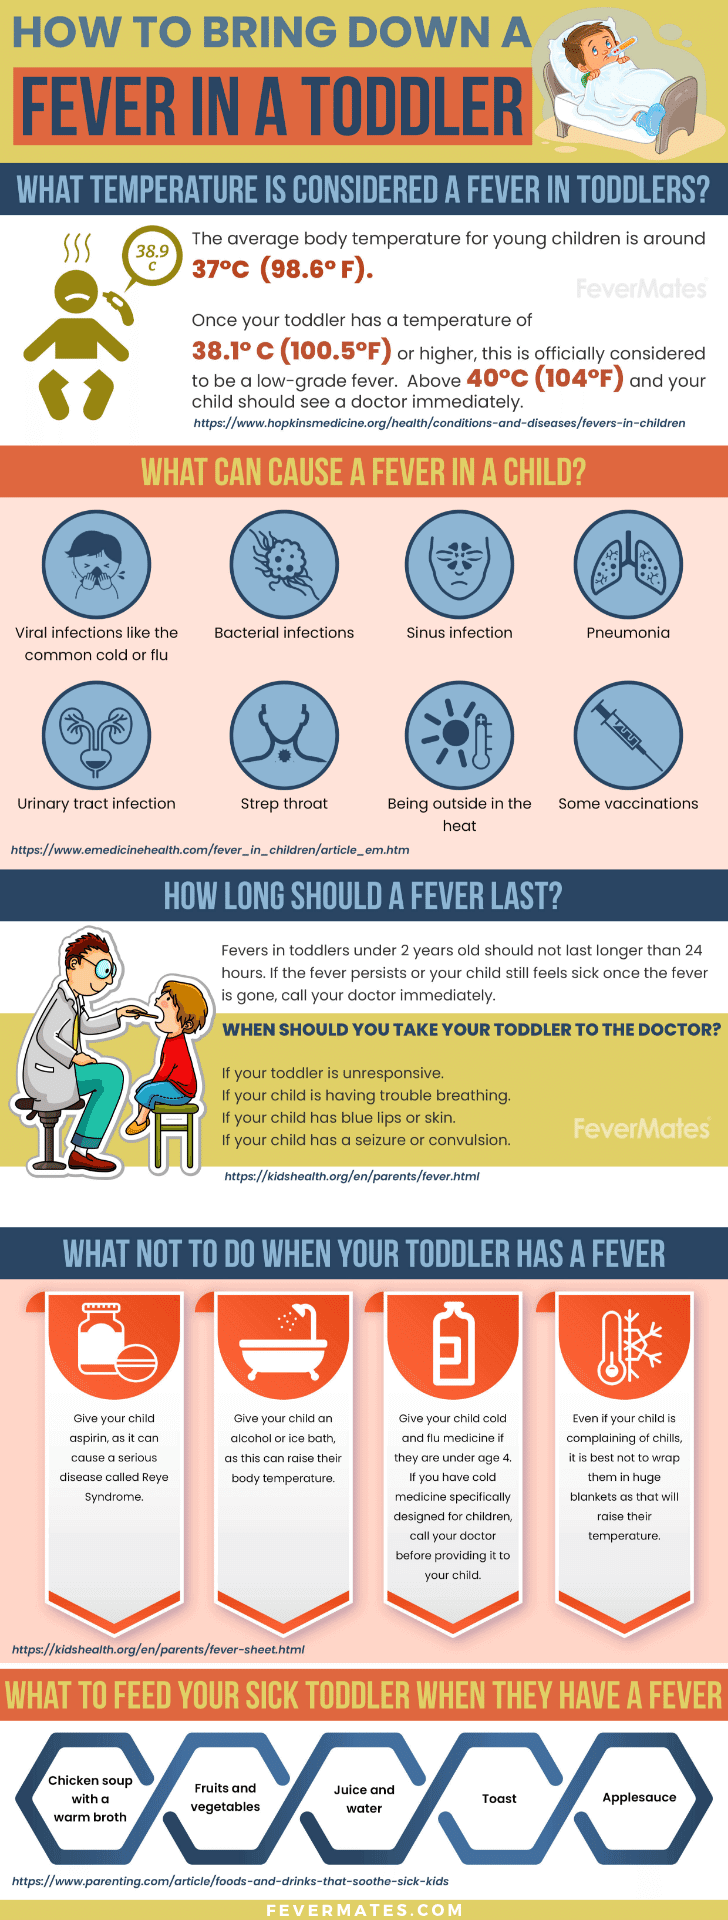 fevermates, fever, baby temperature, temperature, what to feed a sick toddler, how to bring down a fever in a toddler, how long should a fever last?, what can cause a fever in a child?